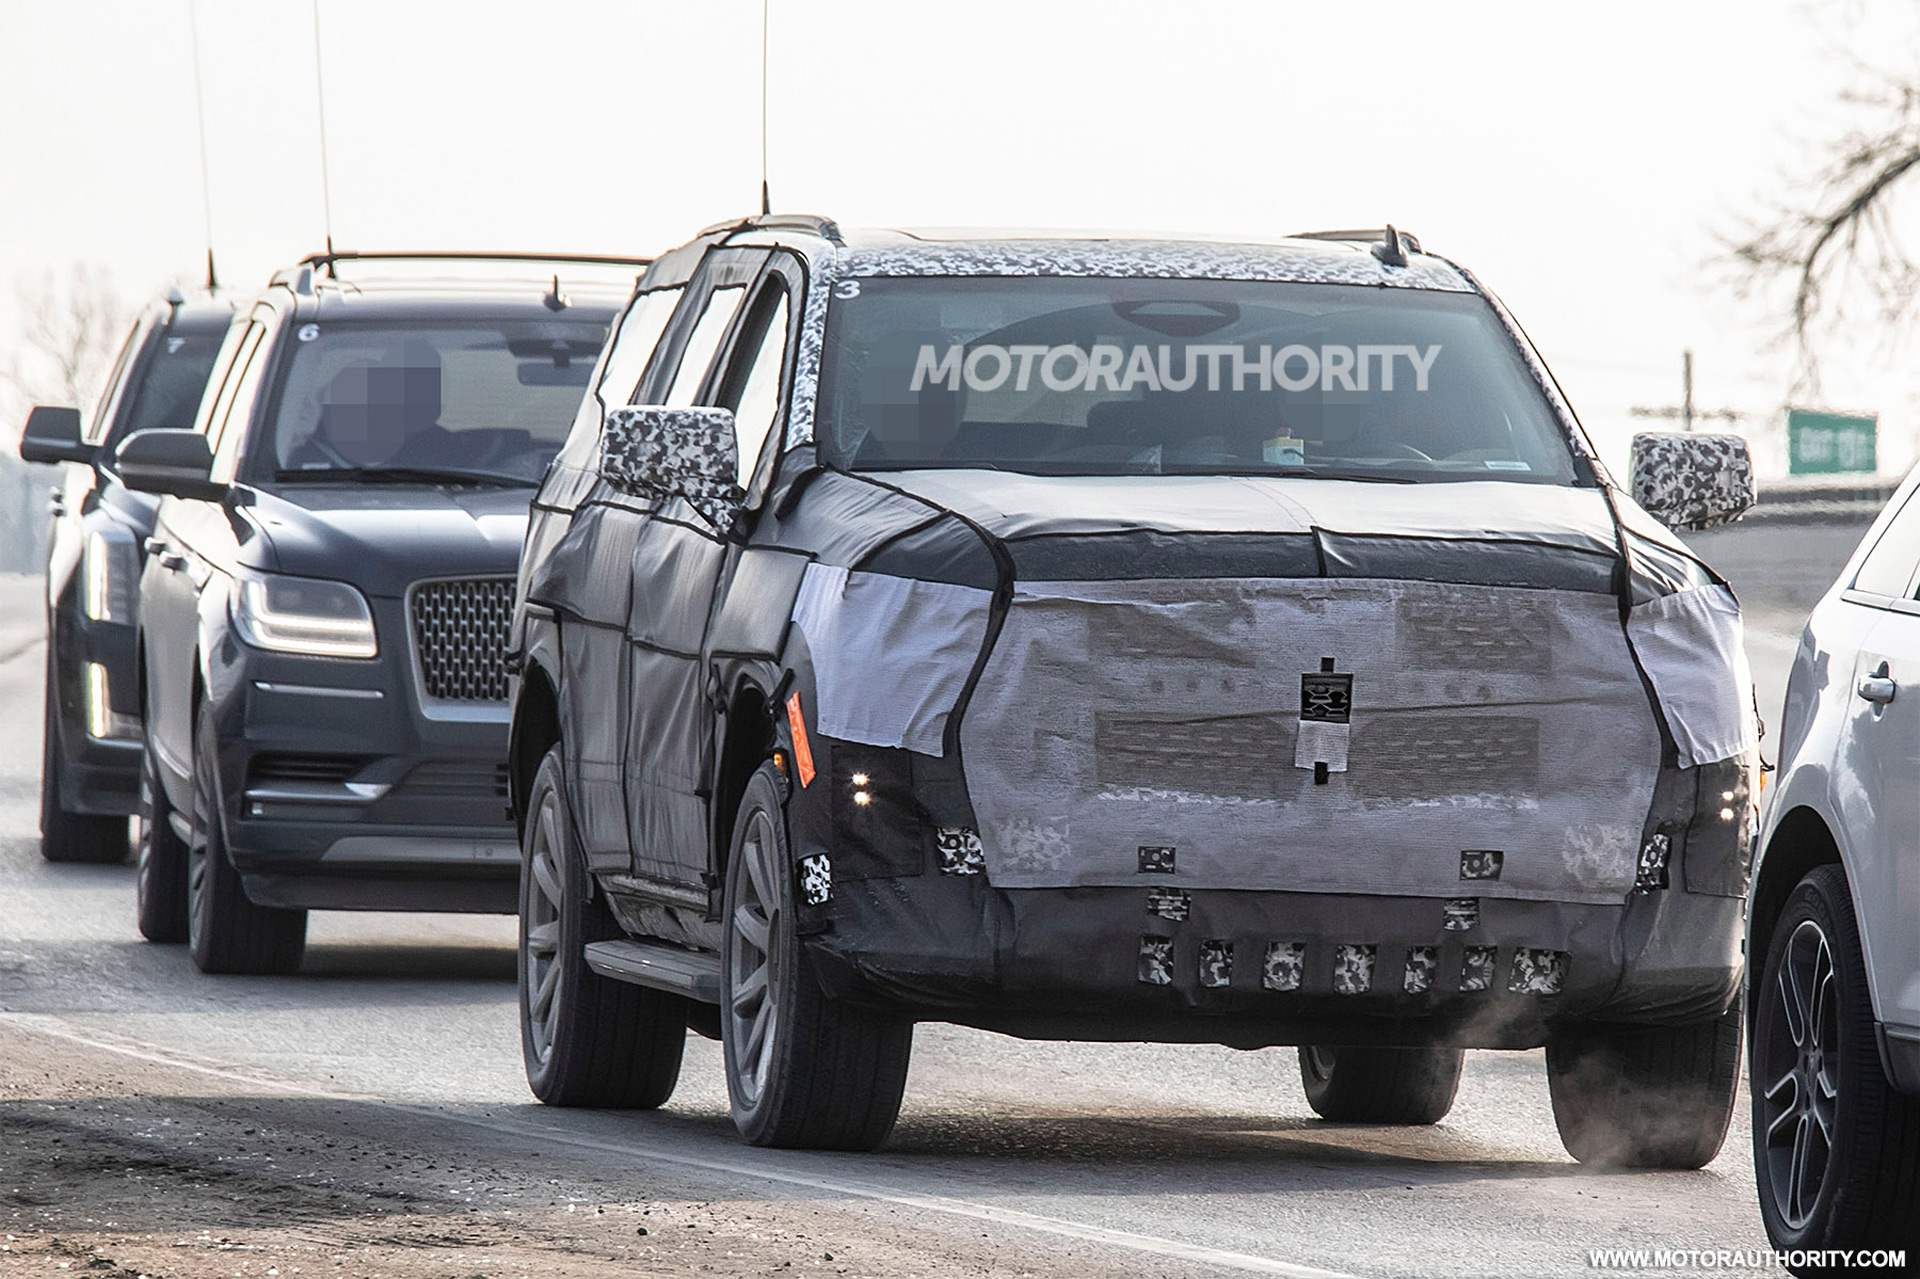 2021 Cadillac Escalade spy shots